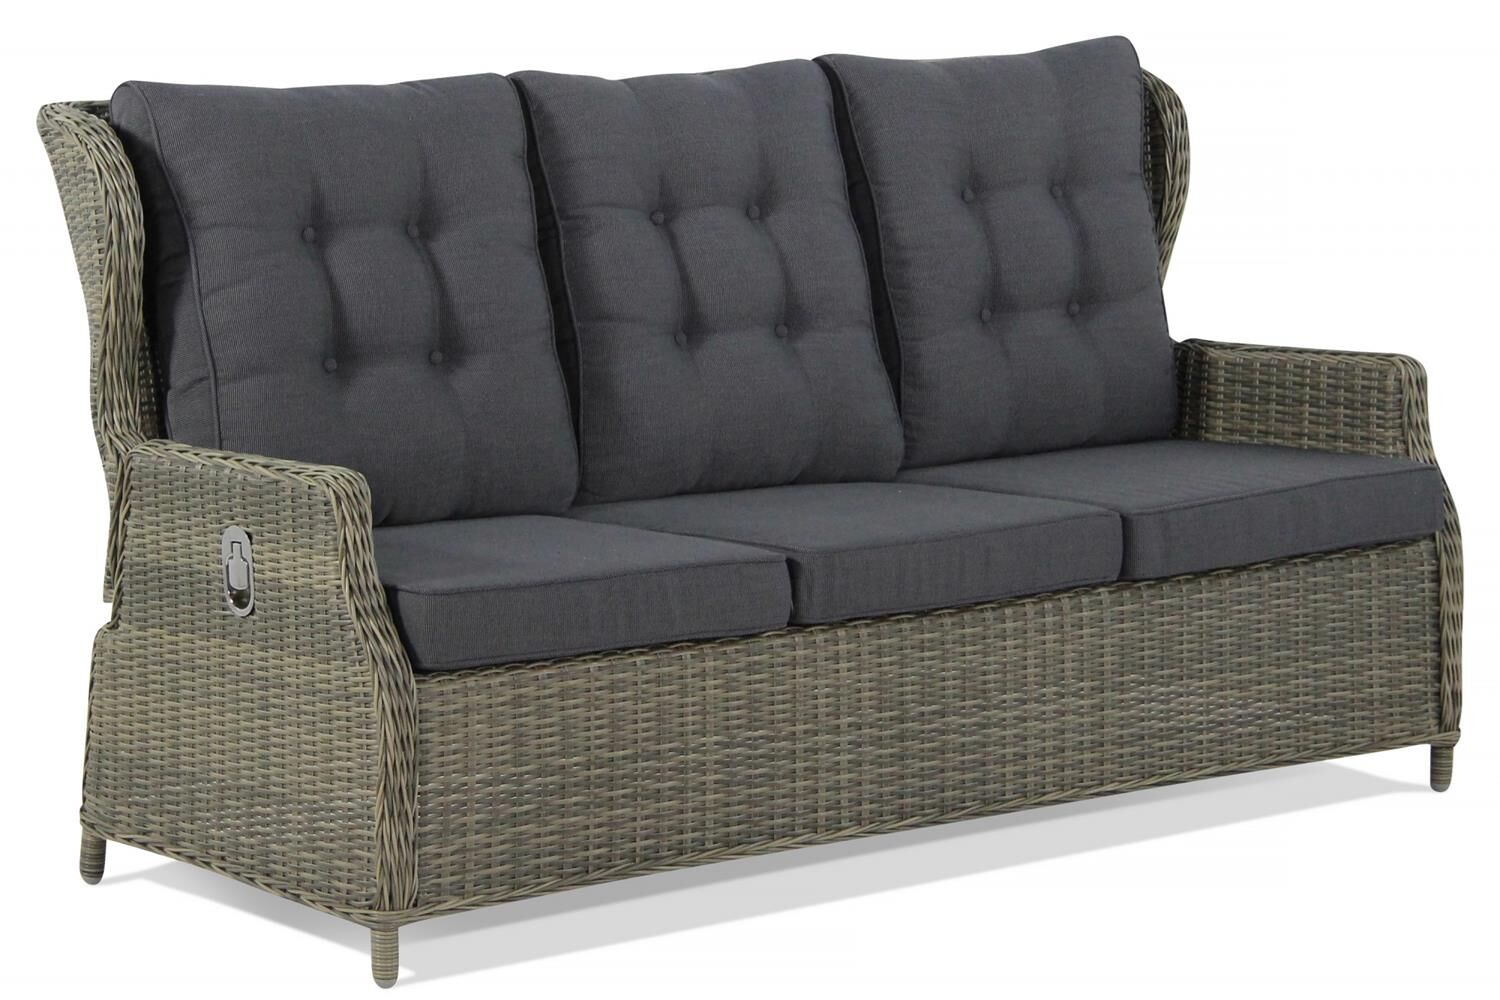 Garden Collections Royalty lounge tuinbank 3-zits